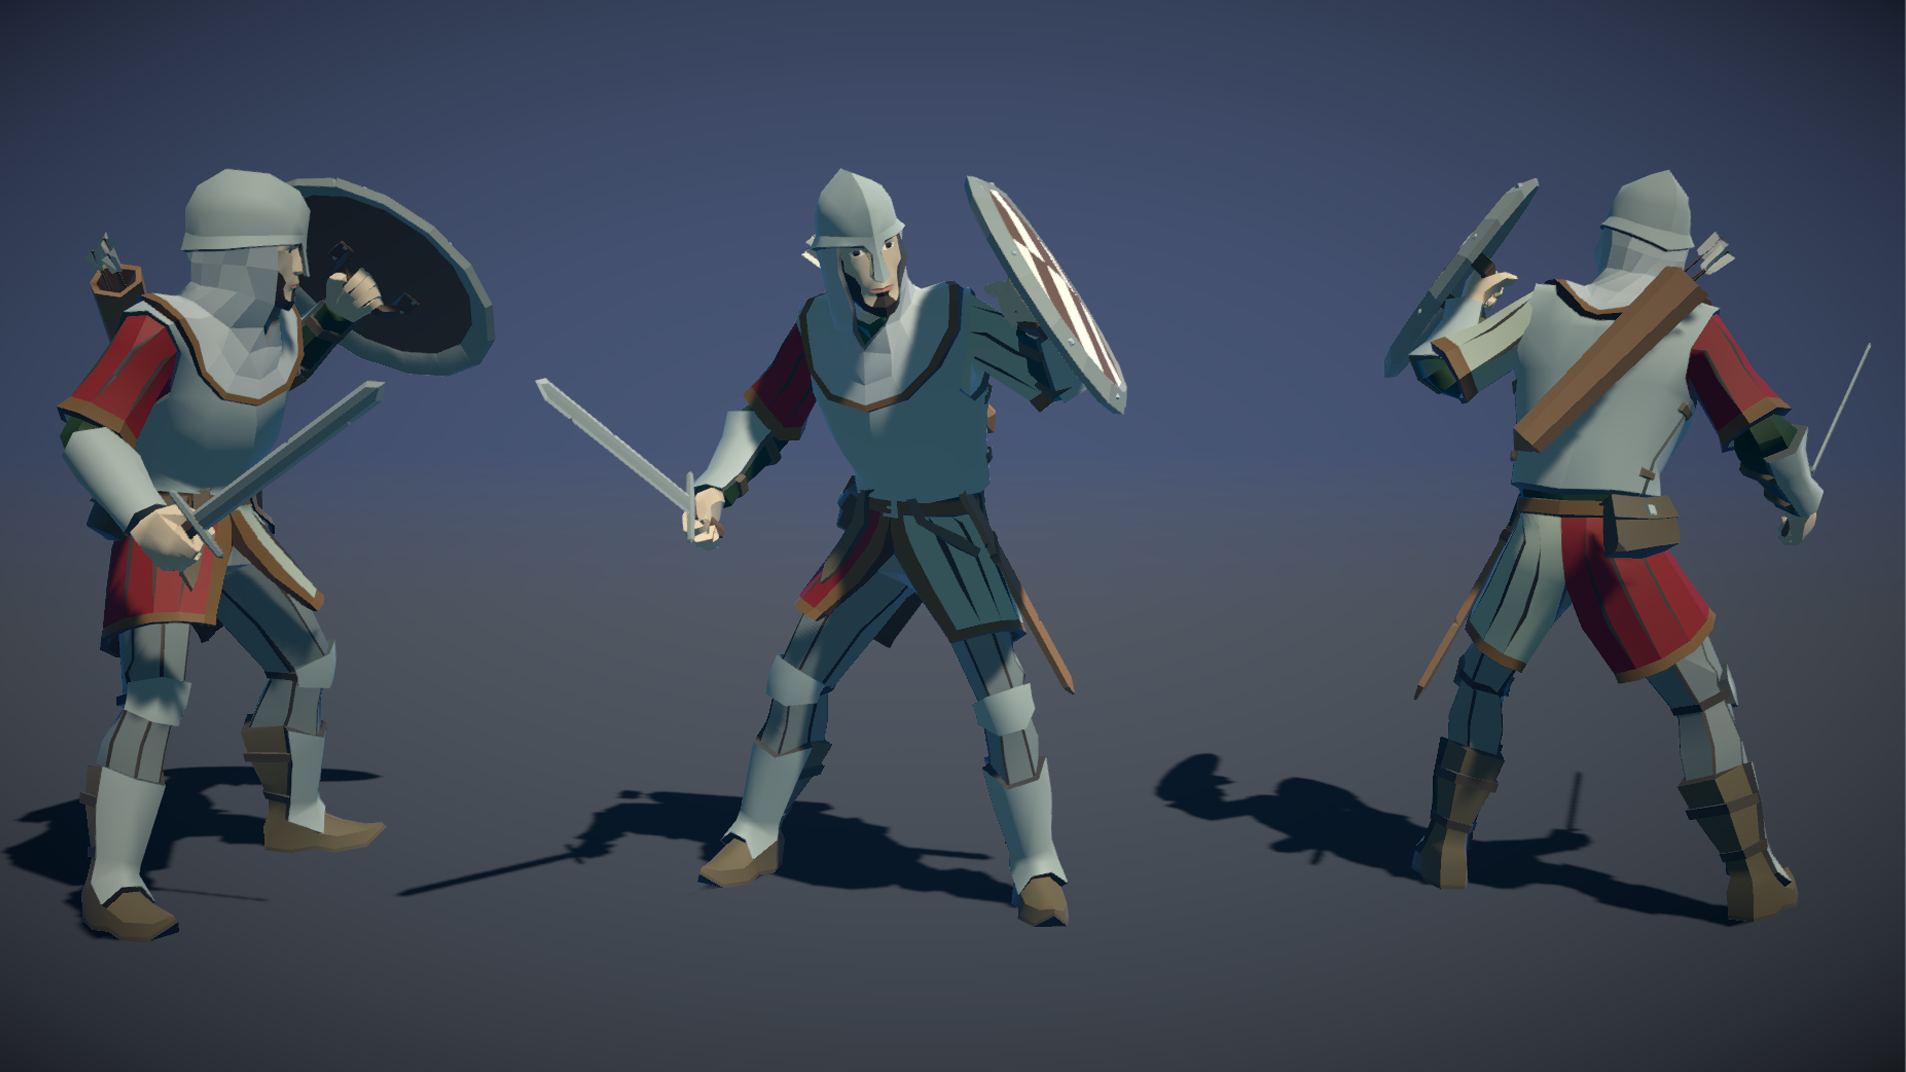 PT_Medieval_Lowpoly_Characters_Soldier_02.png